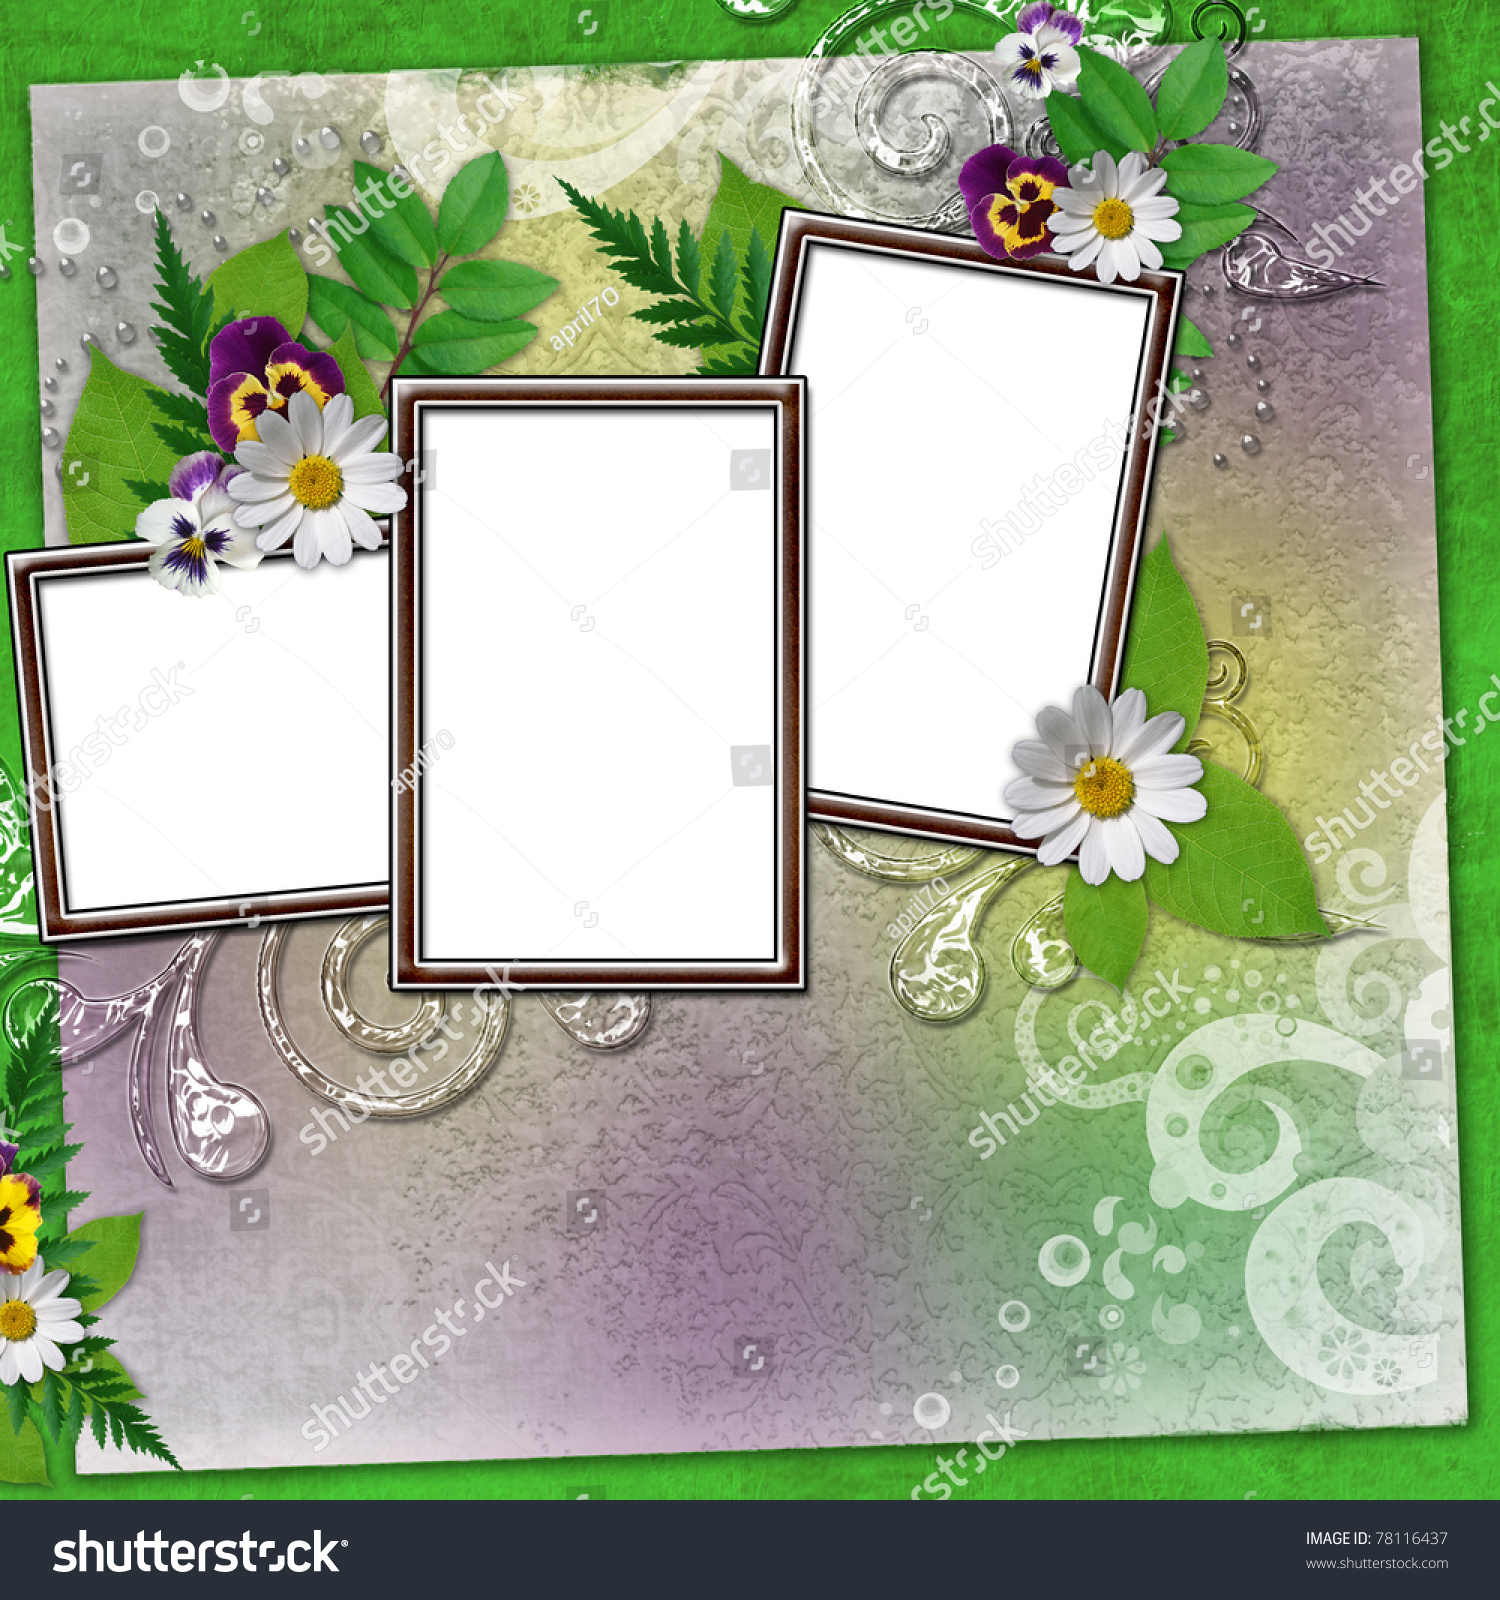 three frame for photos with colorful flowers and leaves